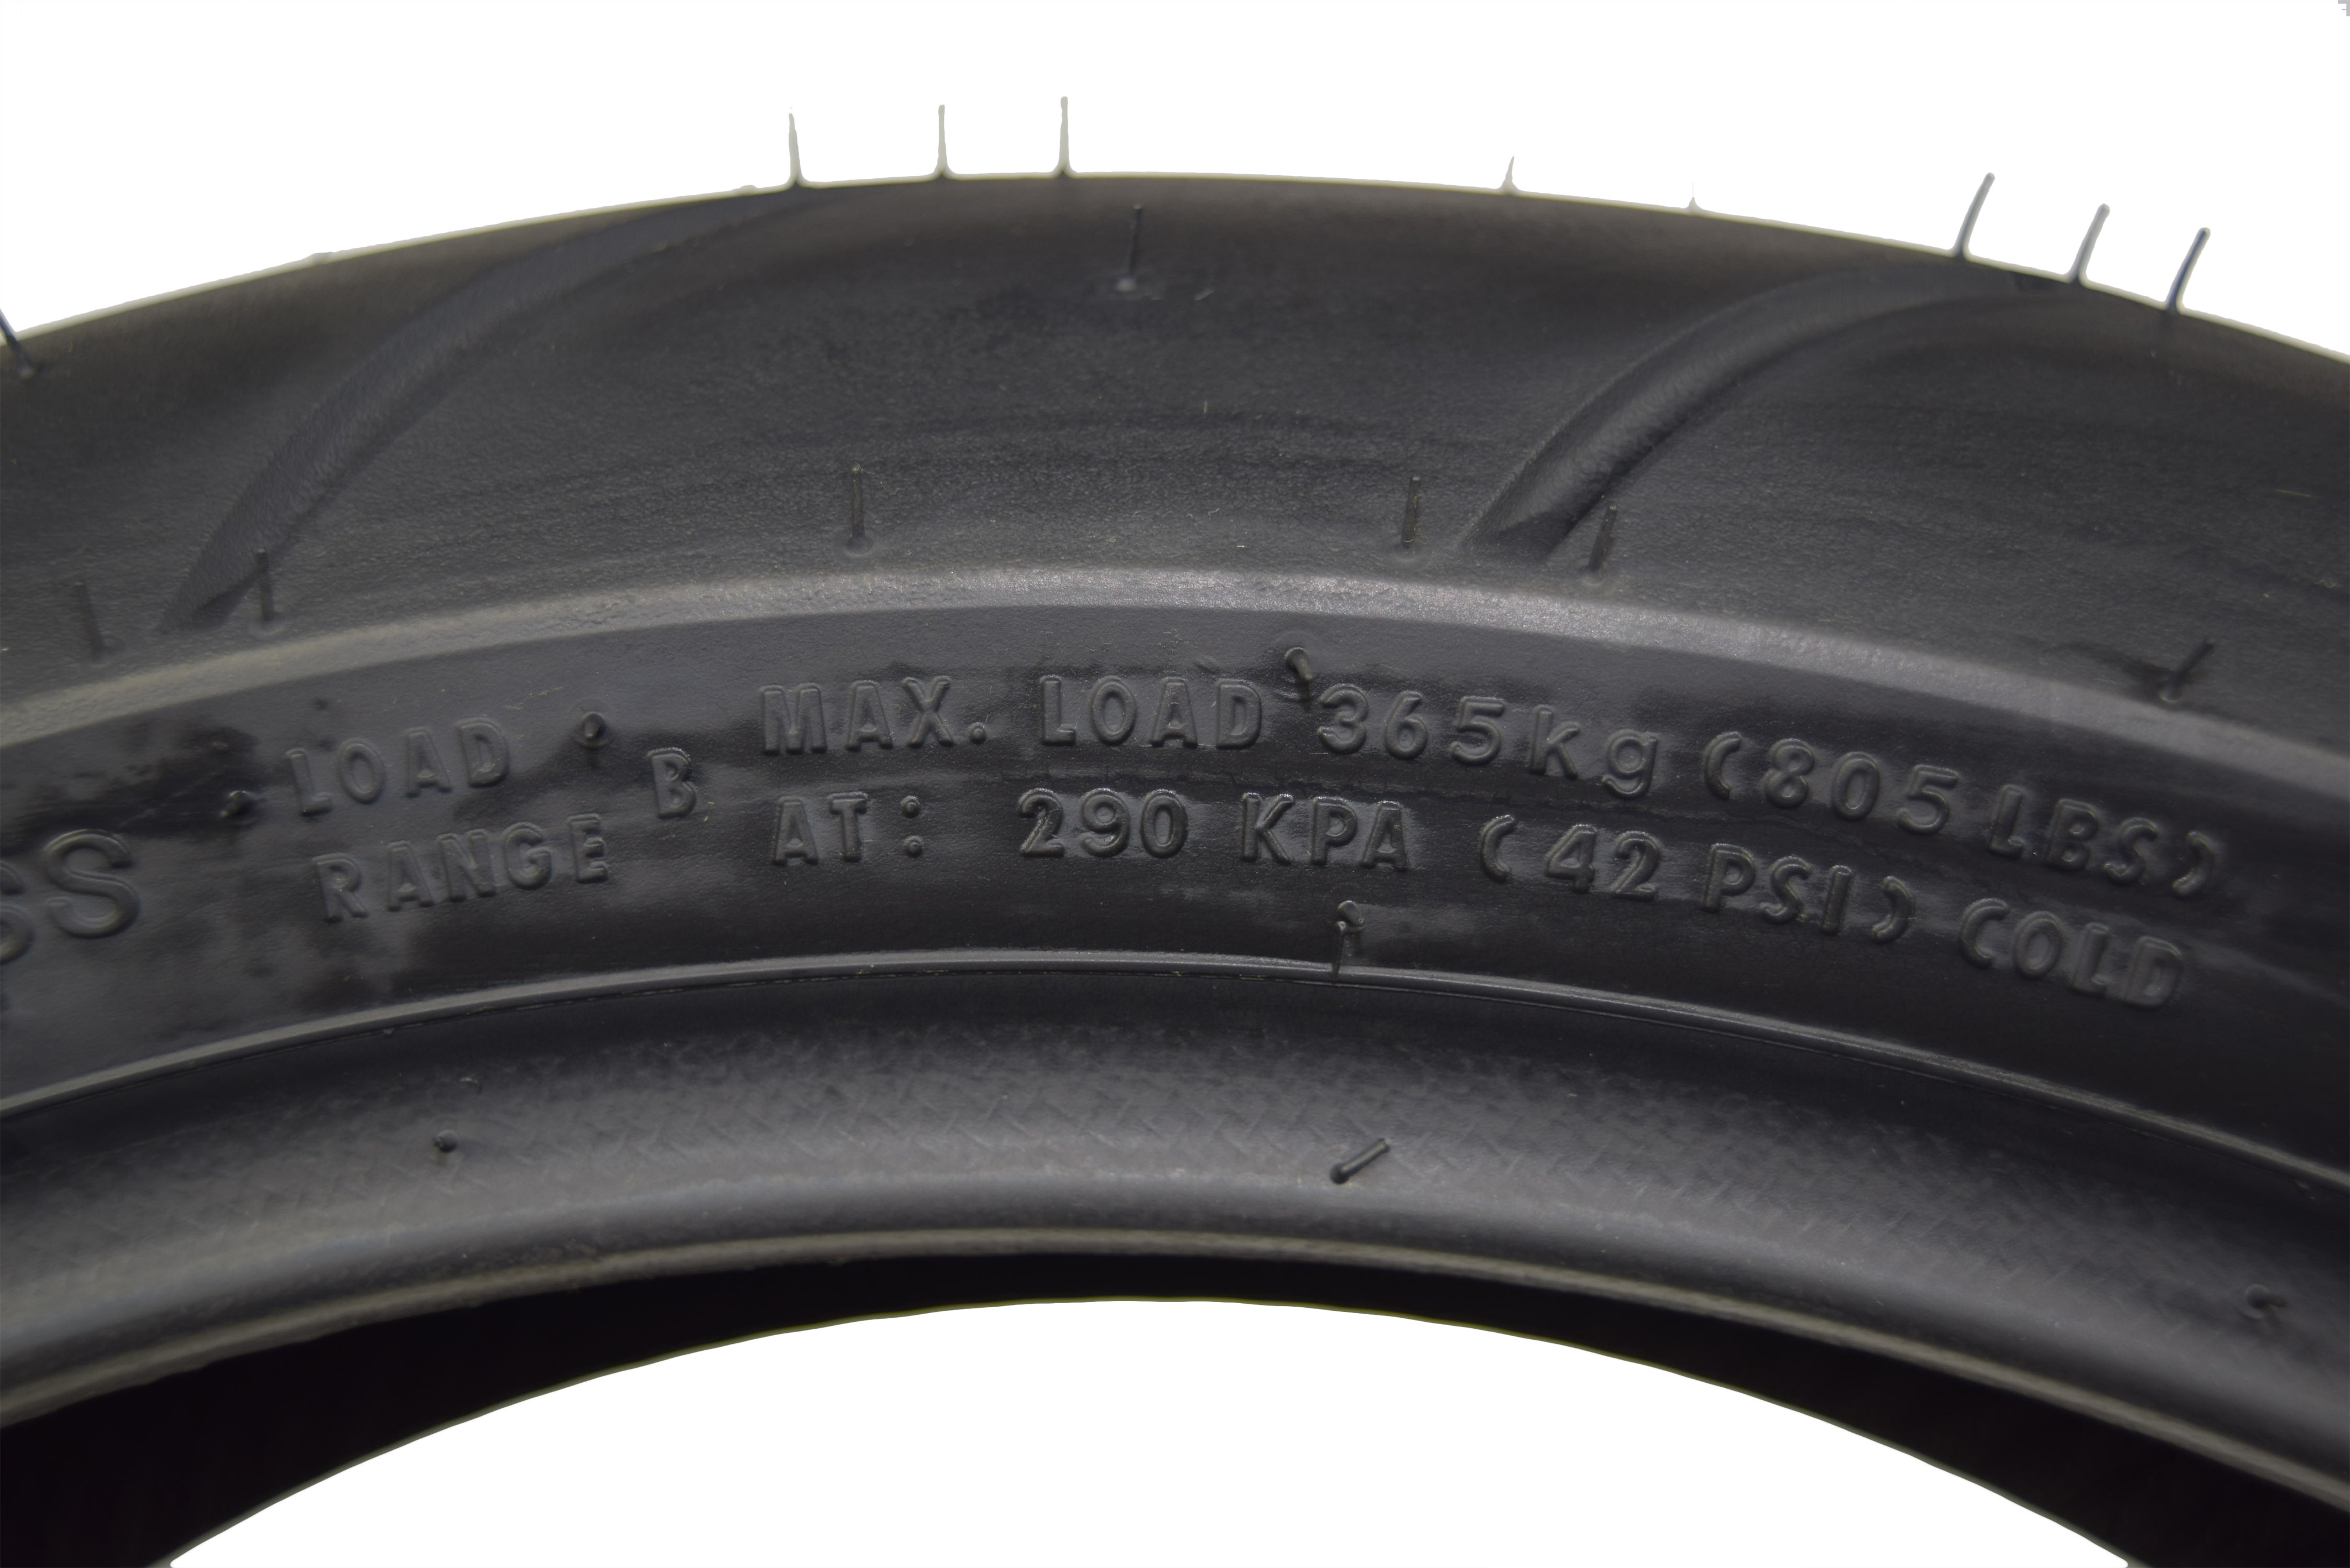 Full-Bore-120-70-17-F-190-50-17-R-Radial-Sportbike-Motorcycle-Tires-image-9